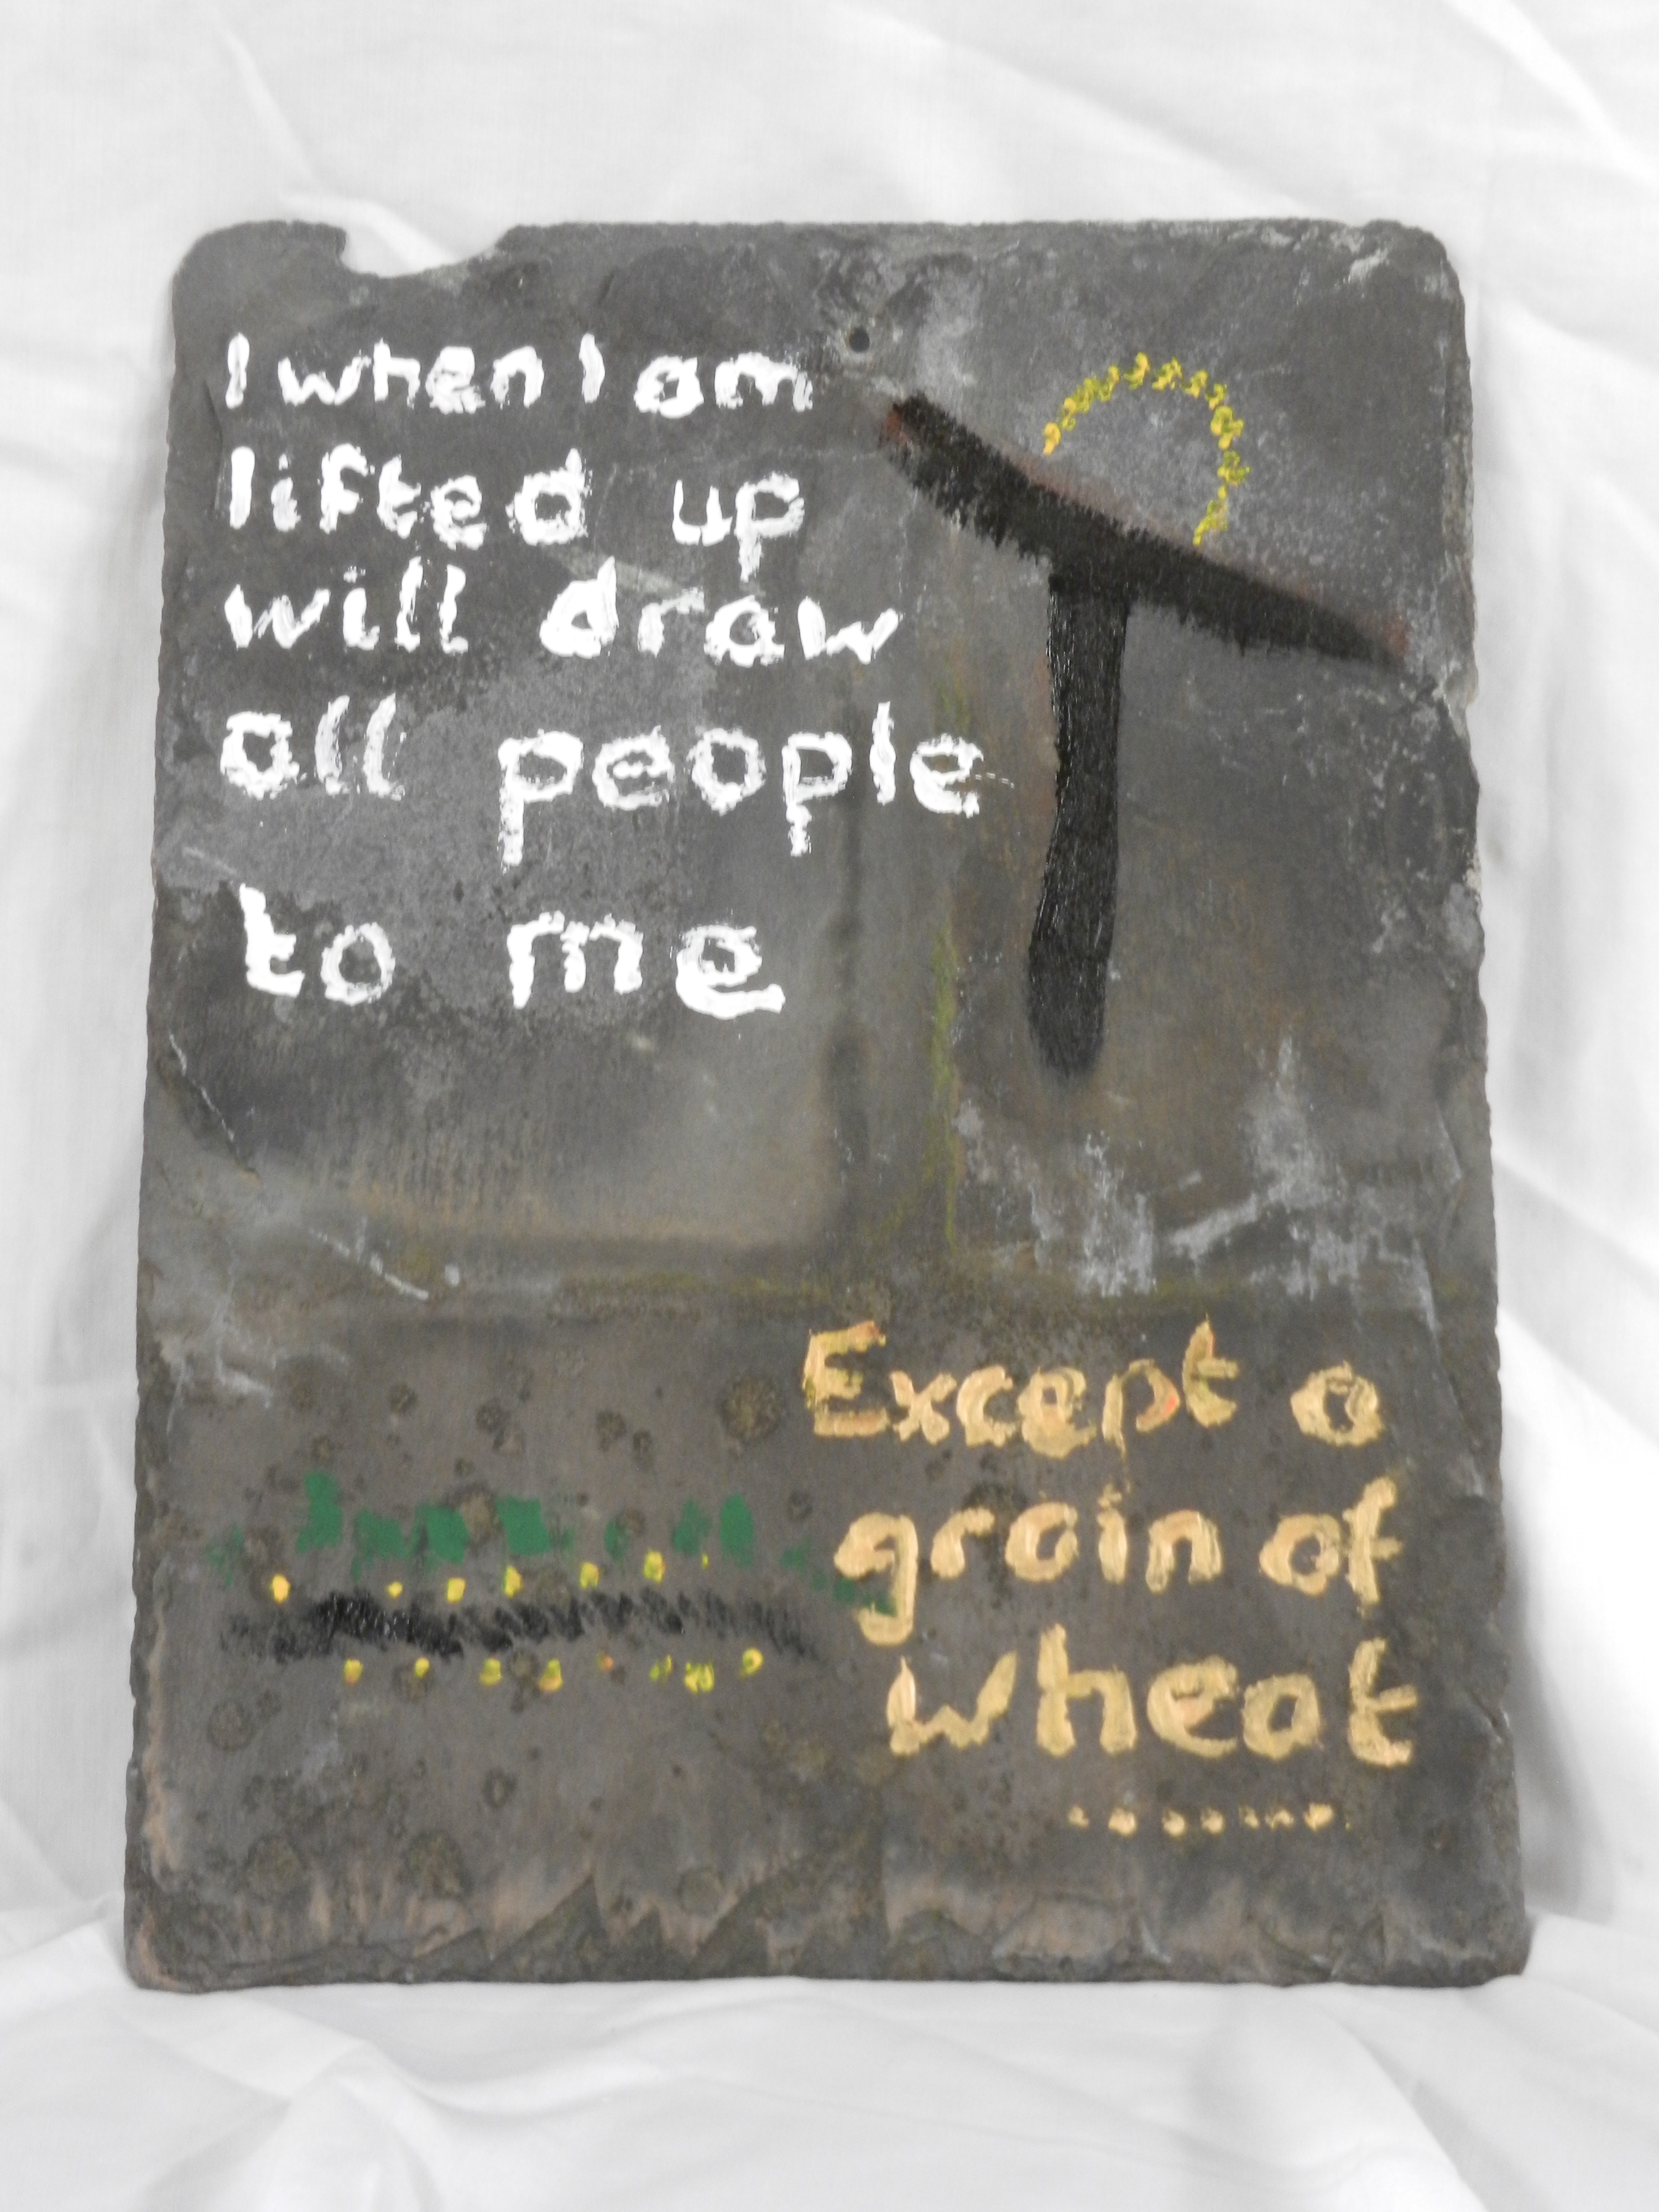 John 12:24: Unless a grain of wheat falls to the ground